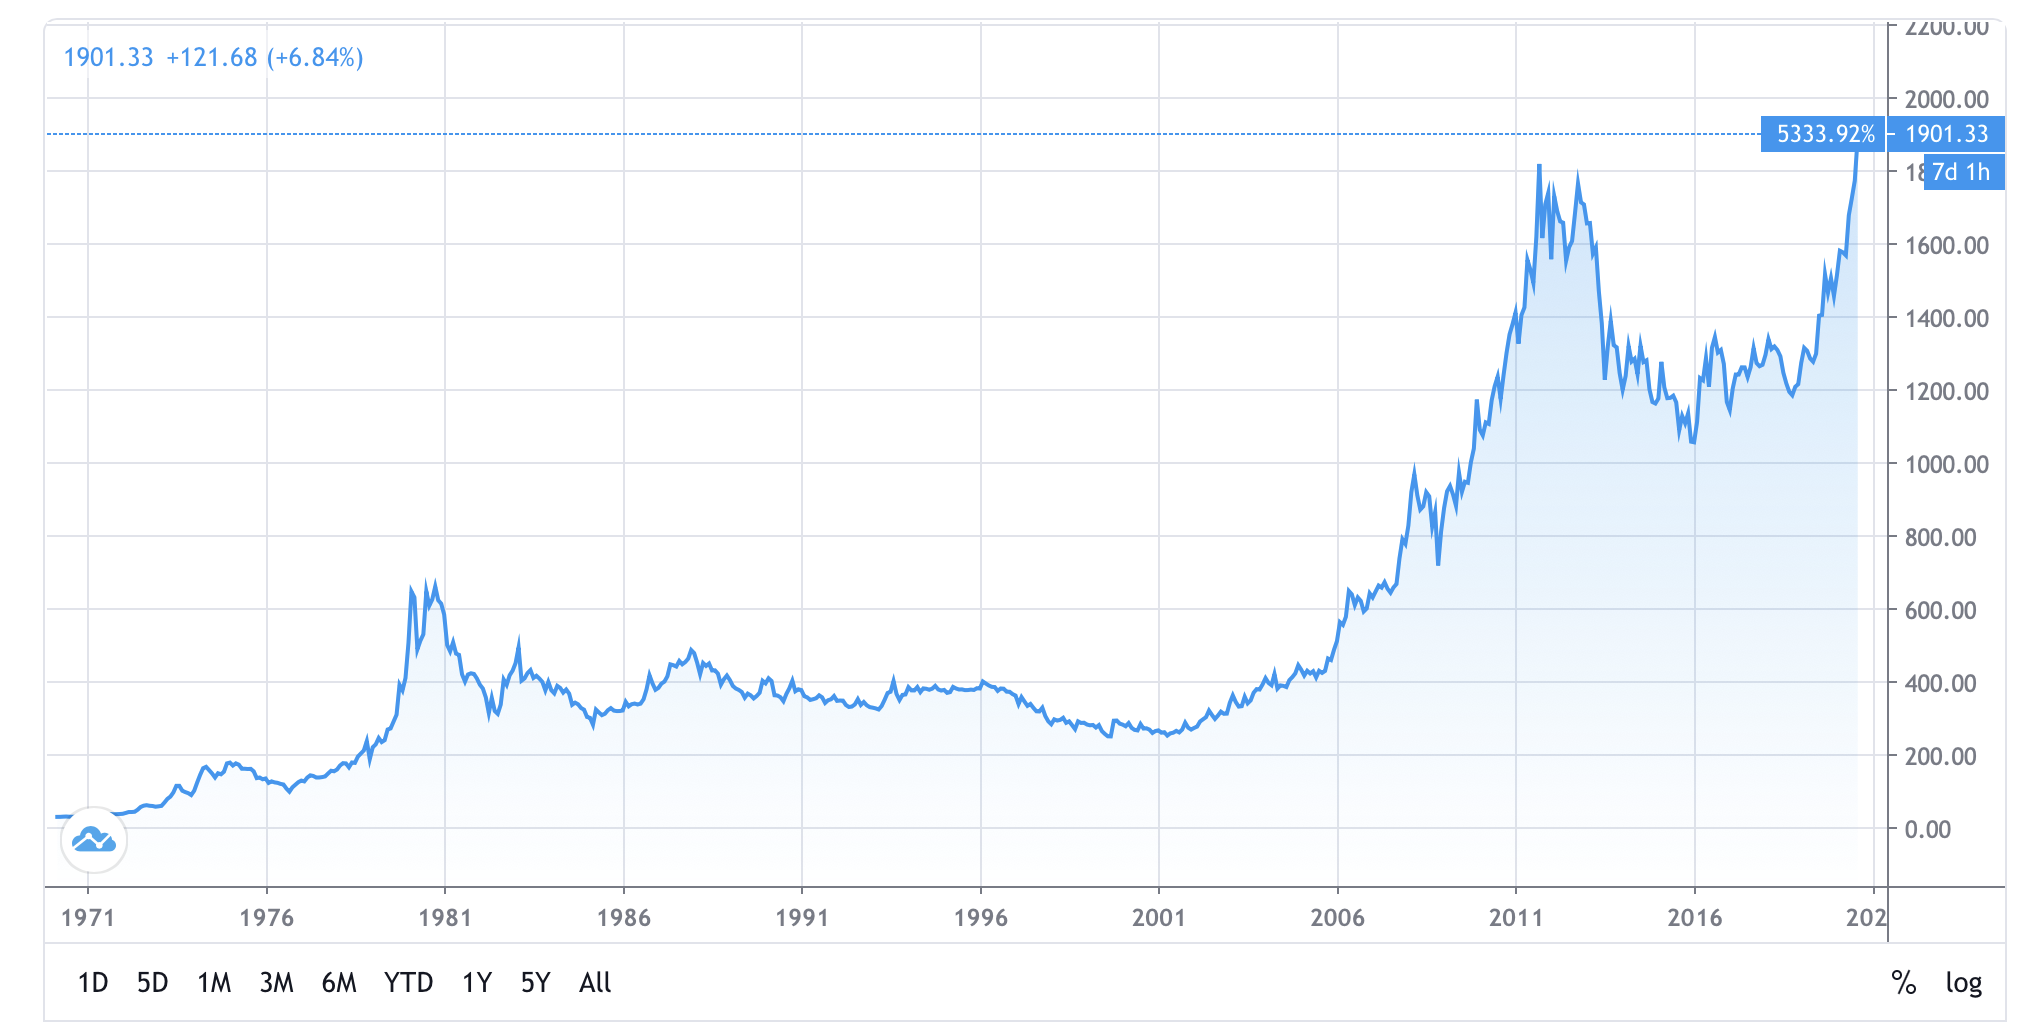 Massive Global Stimulus Drives Gold to Near All-Time Highs